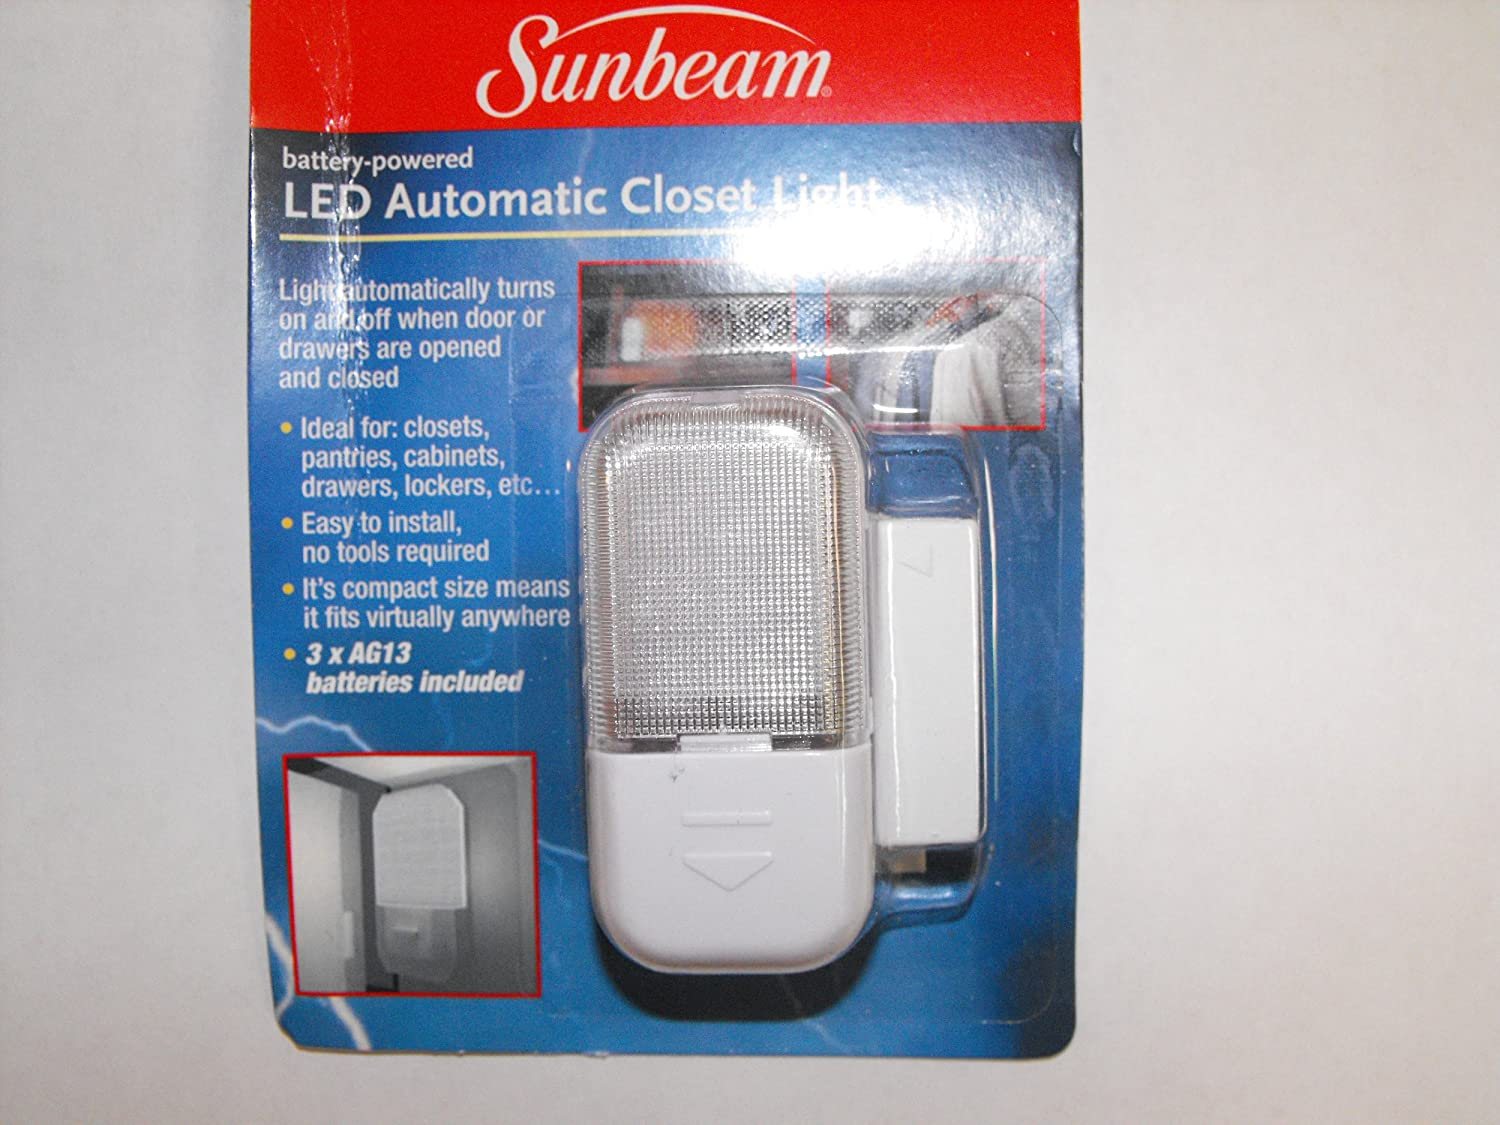 Sunbeam LED Automatic Closet Light   Led Household Light Bulbs   Amazon.com